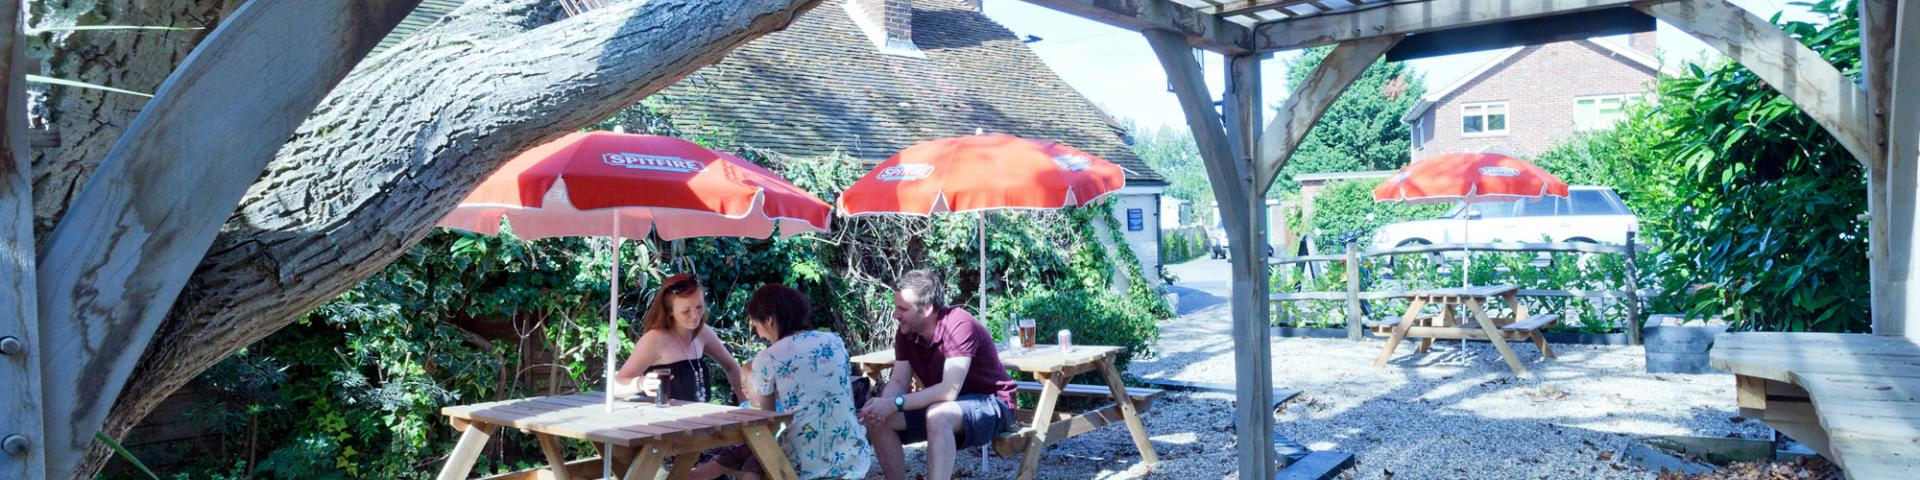 Three Horseshoes Faversham Beer Garden 2